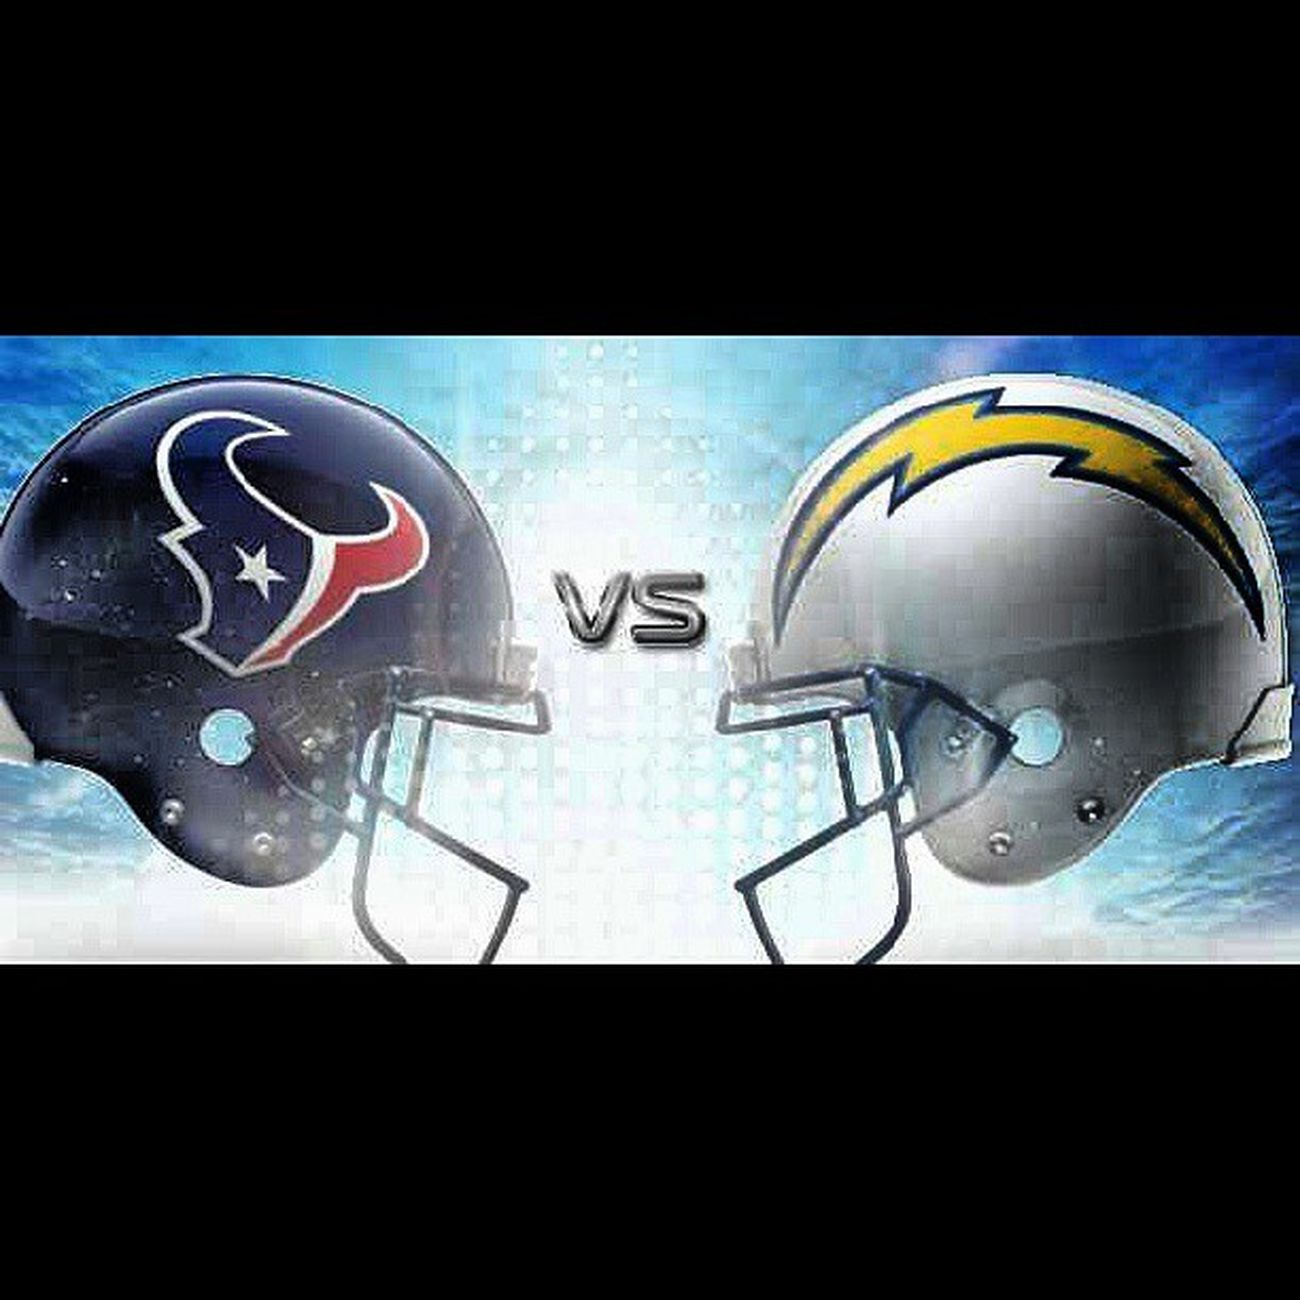 Gametowatch Mnf Boltup Chargersnation Sdc ChargersvsTexans